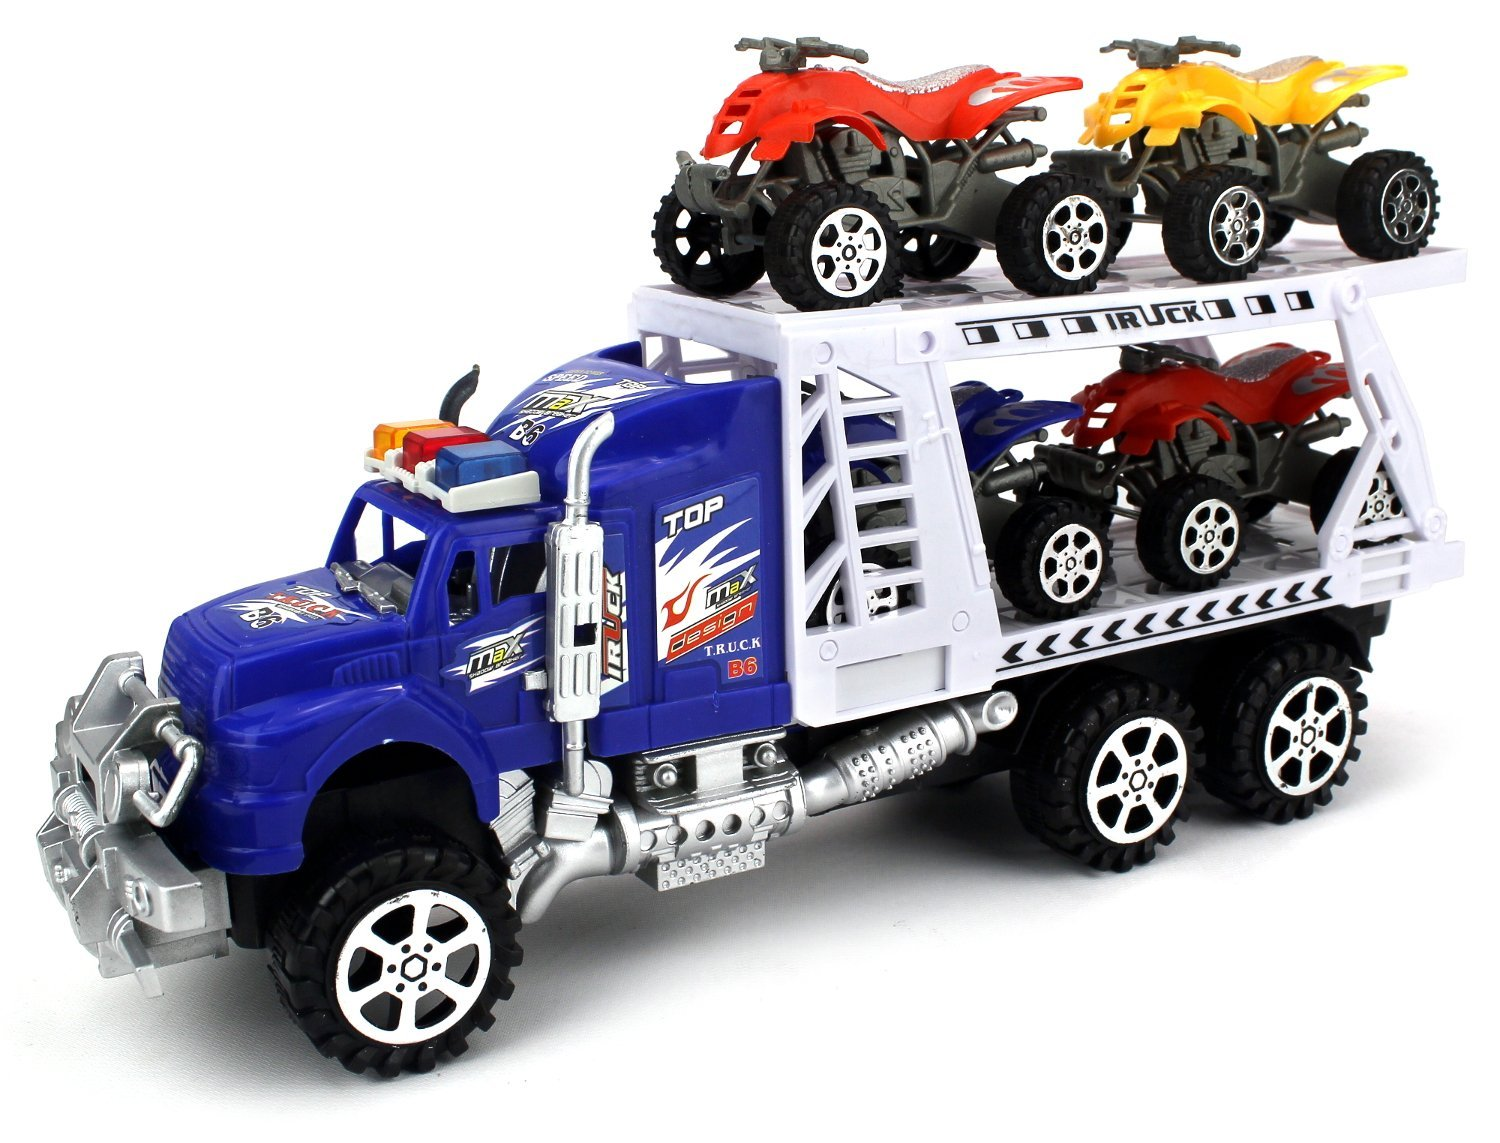 ATV Transporter Trailer Children's Friction Toy Truck Ready To Run w  4 Toy ATVs, No... by Velocity Toys